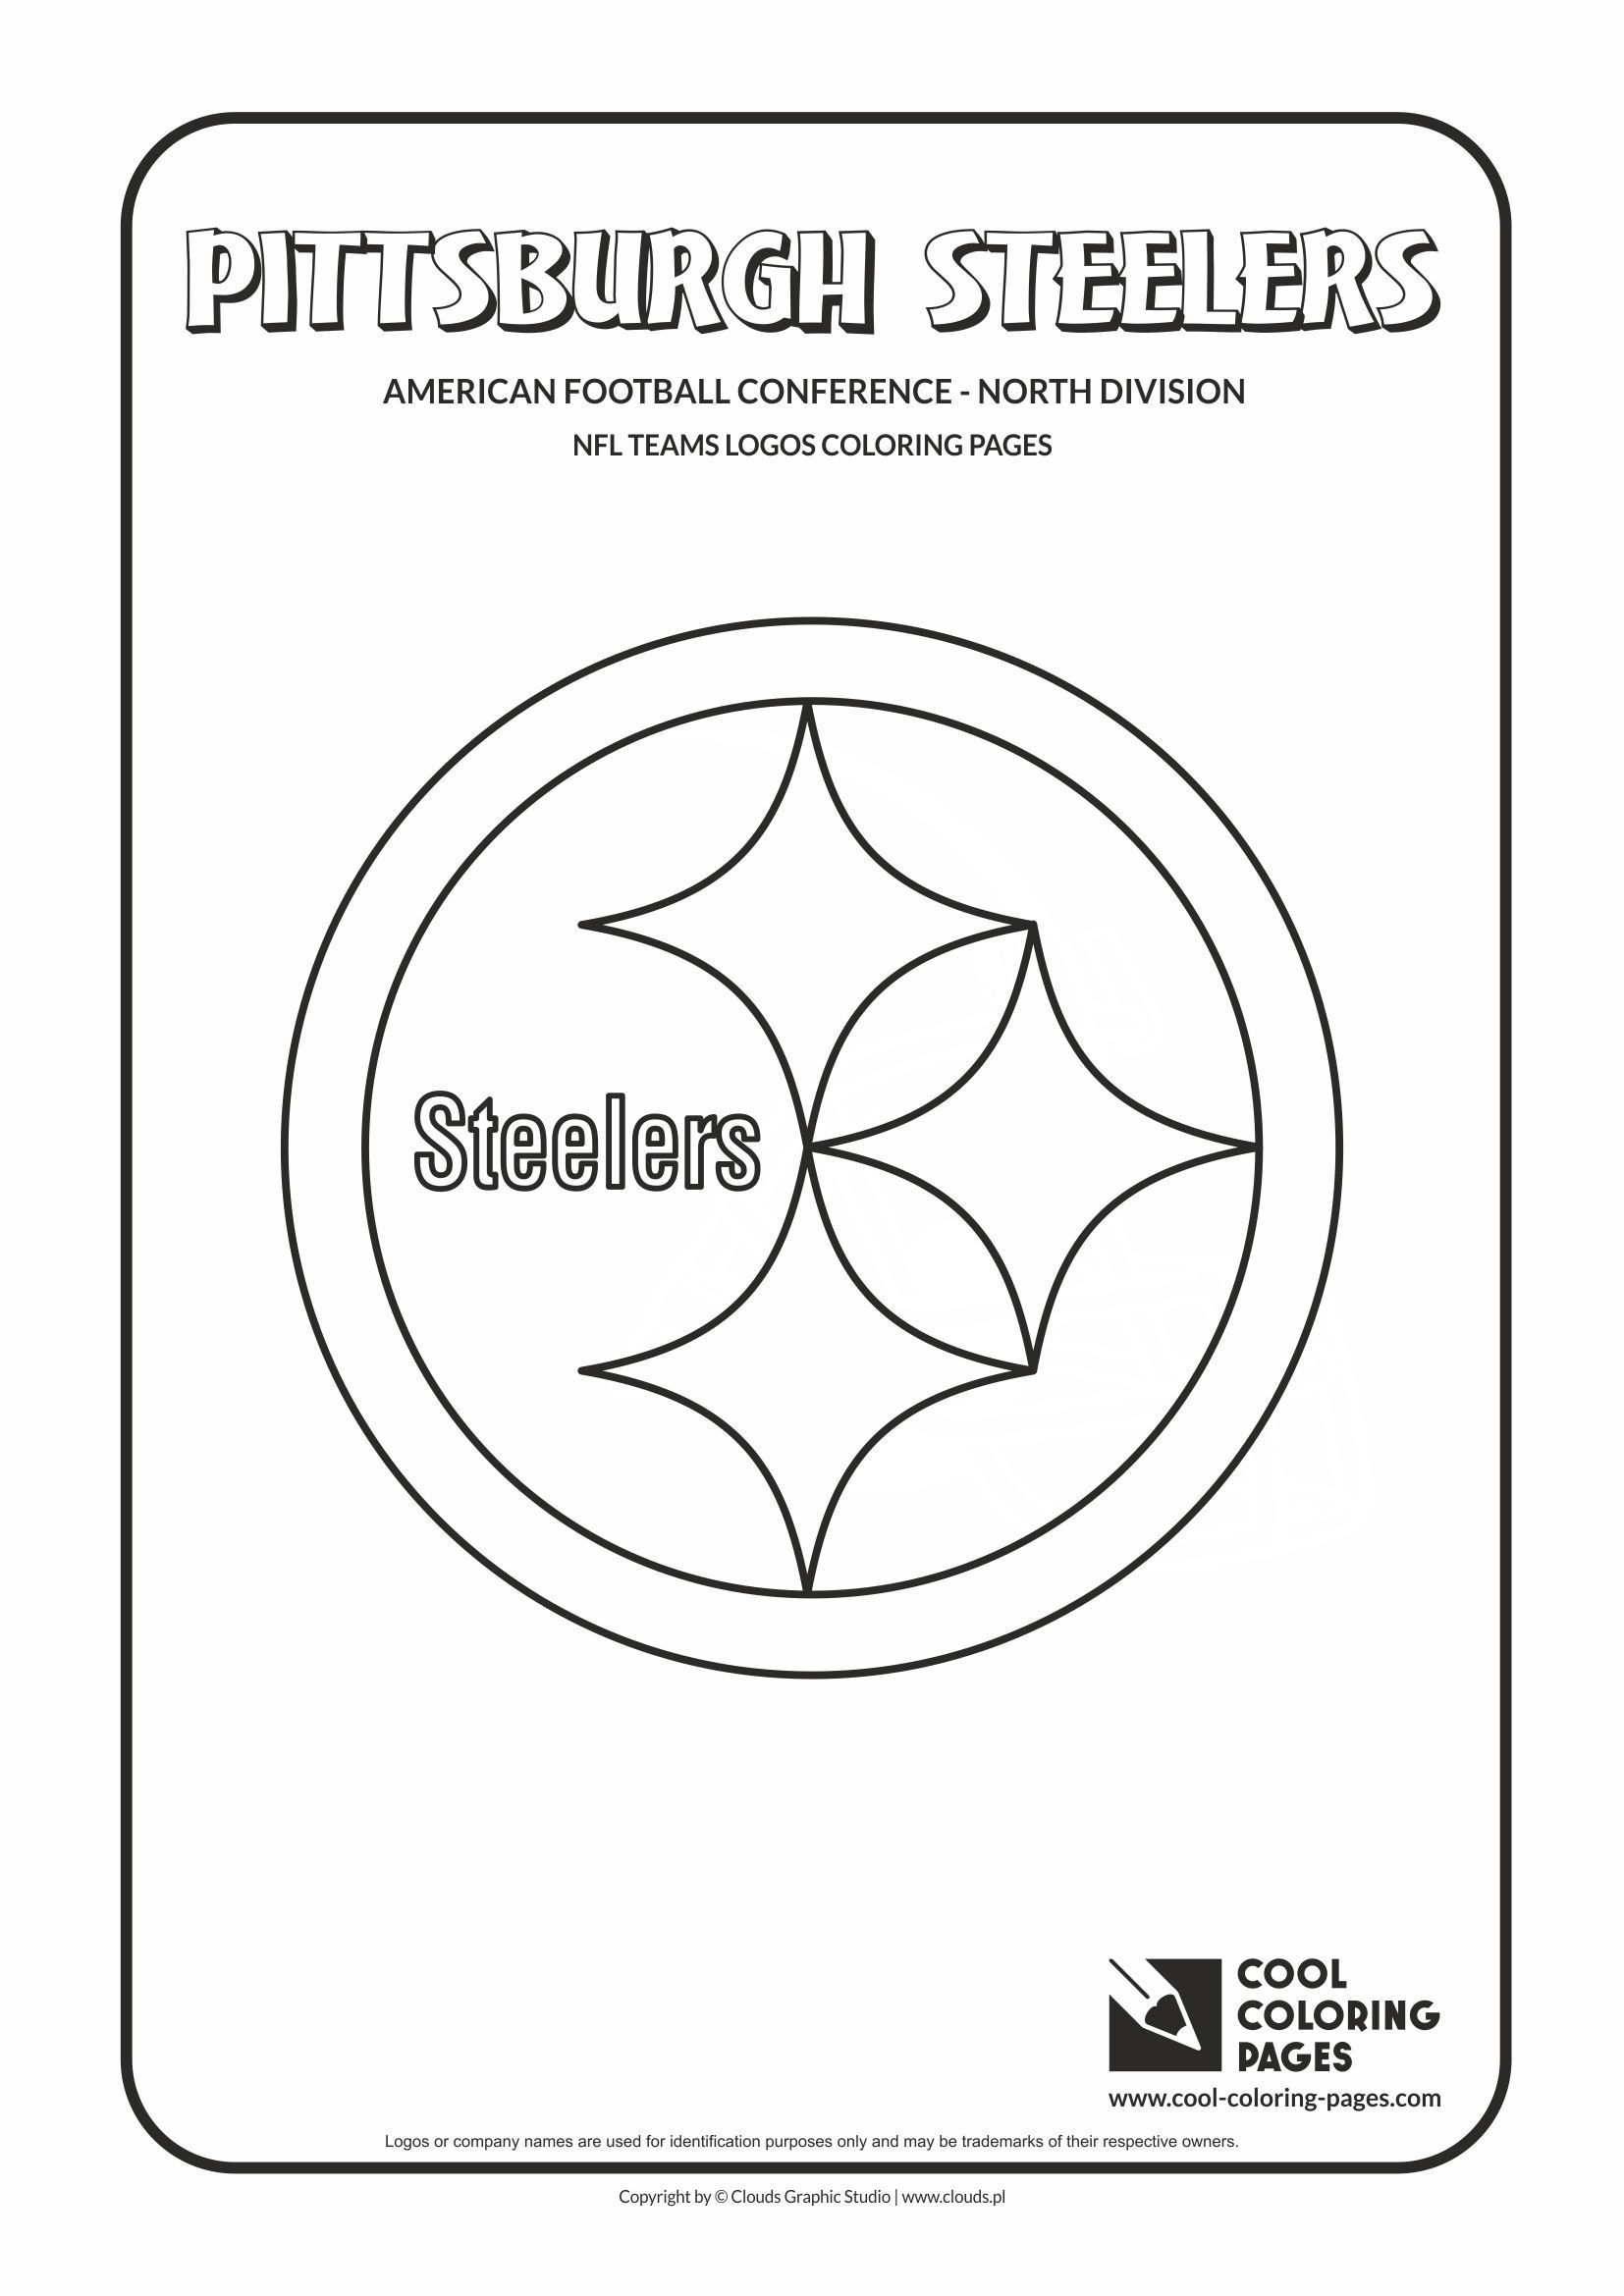 Nfl Logo Coloring Pages For 2019 Http Www Wallpaperartdesignhd Us Nfl Logo Coloring Pages For 2019 47182 Nfl Teams Logos Football Coloring Pages Nfl Logo